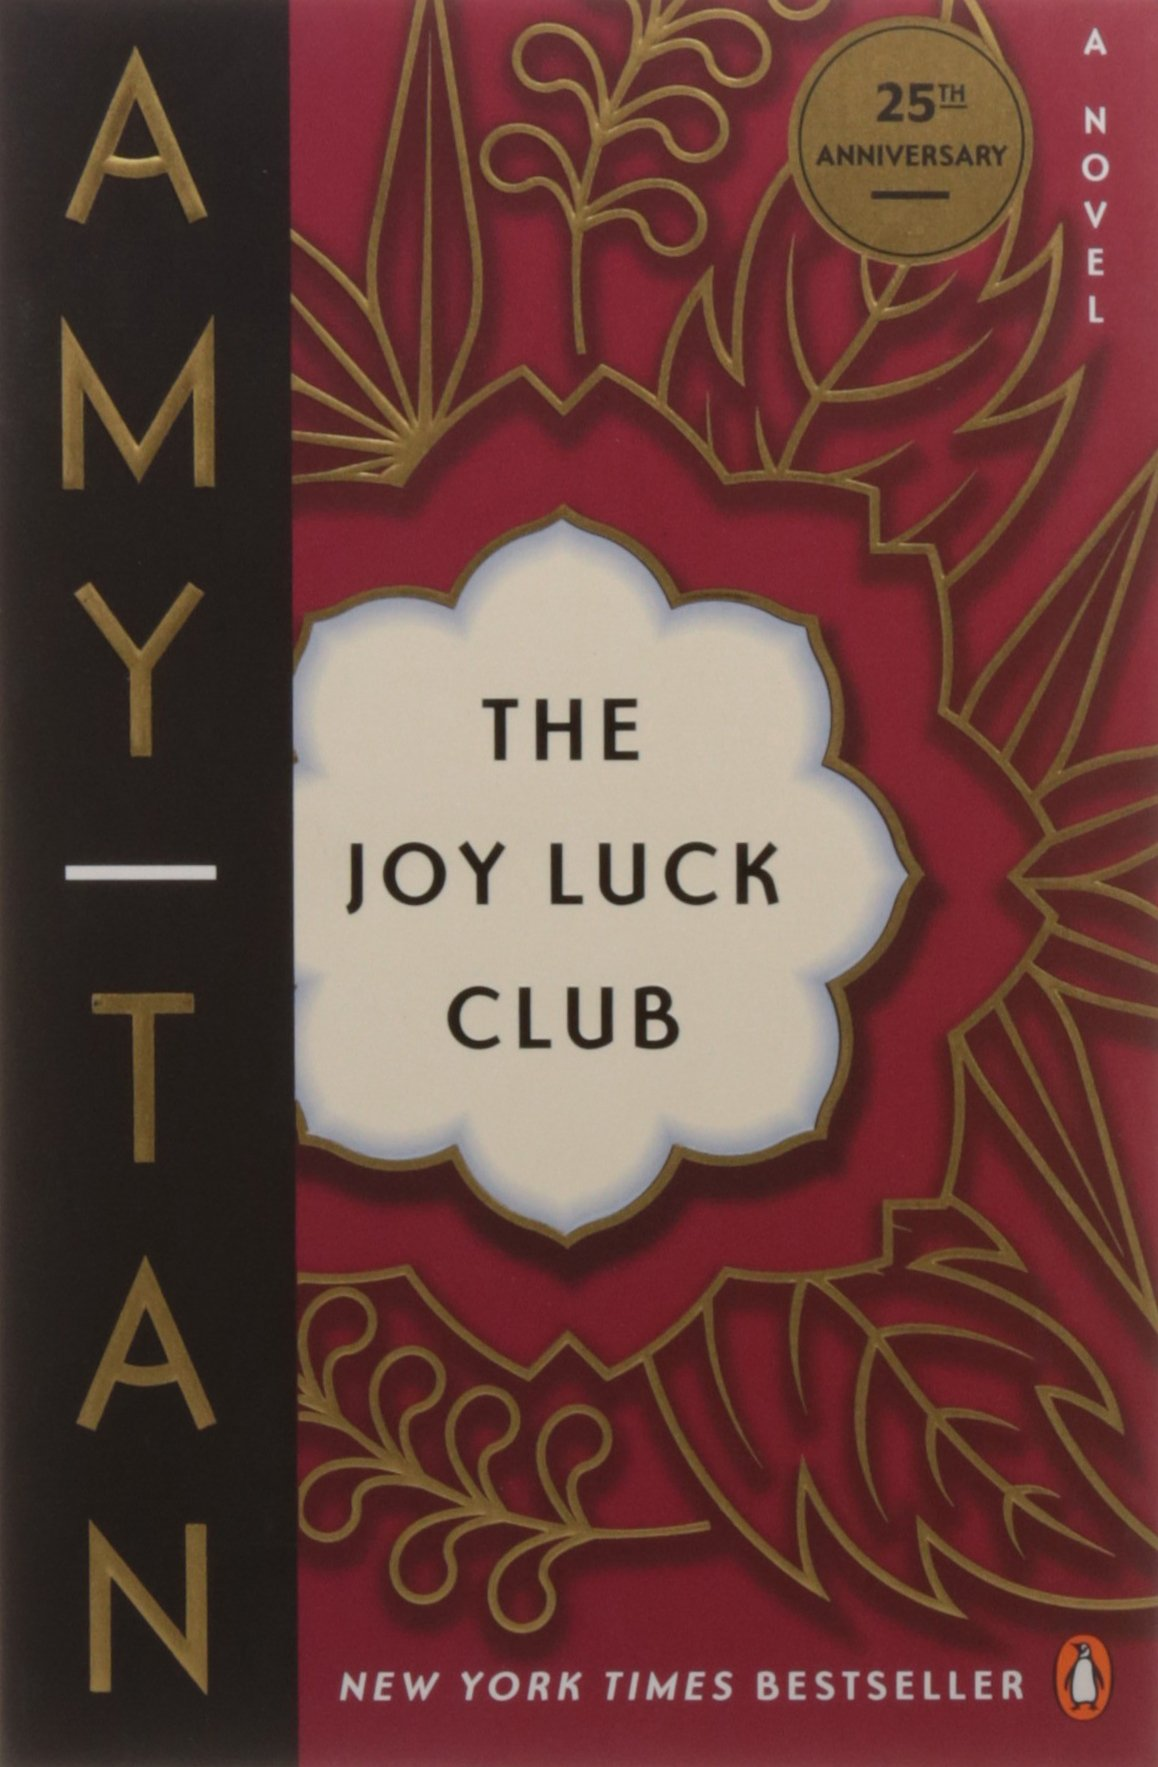 the joy luck club a novel amy tan 9780143038092 com books